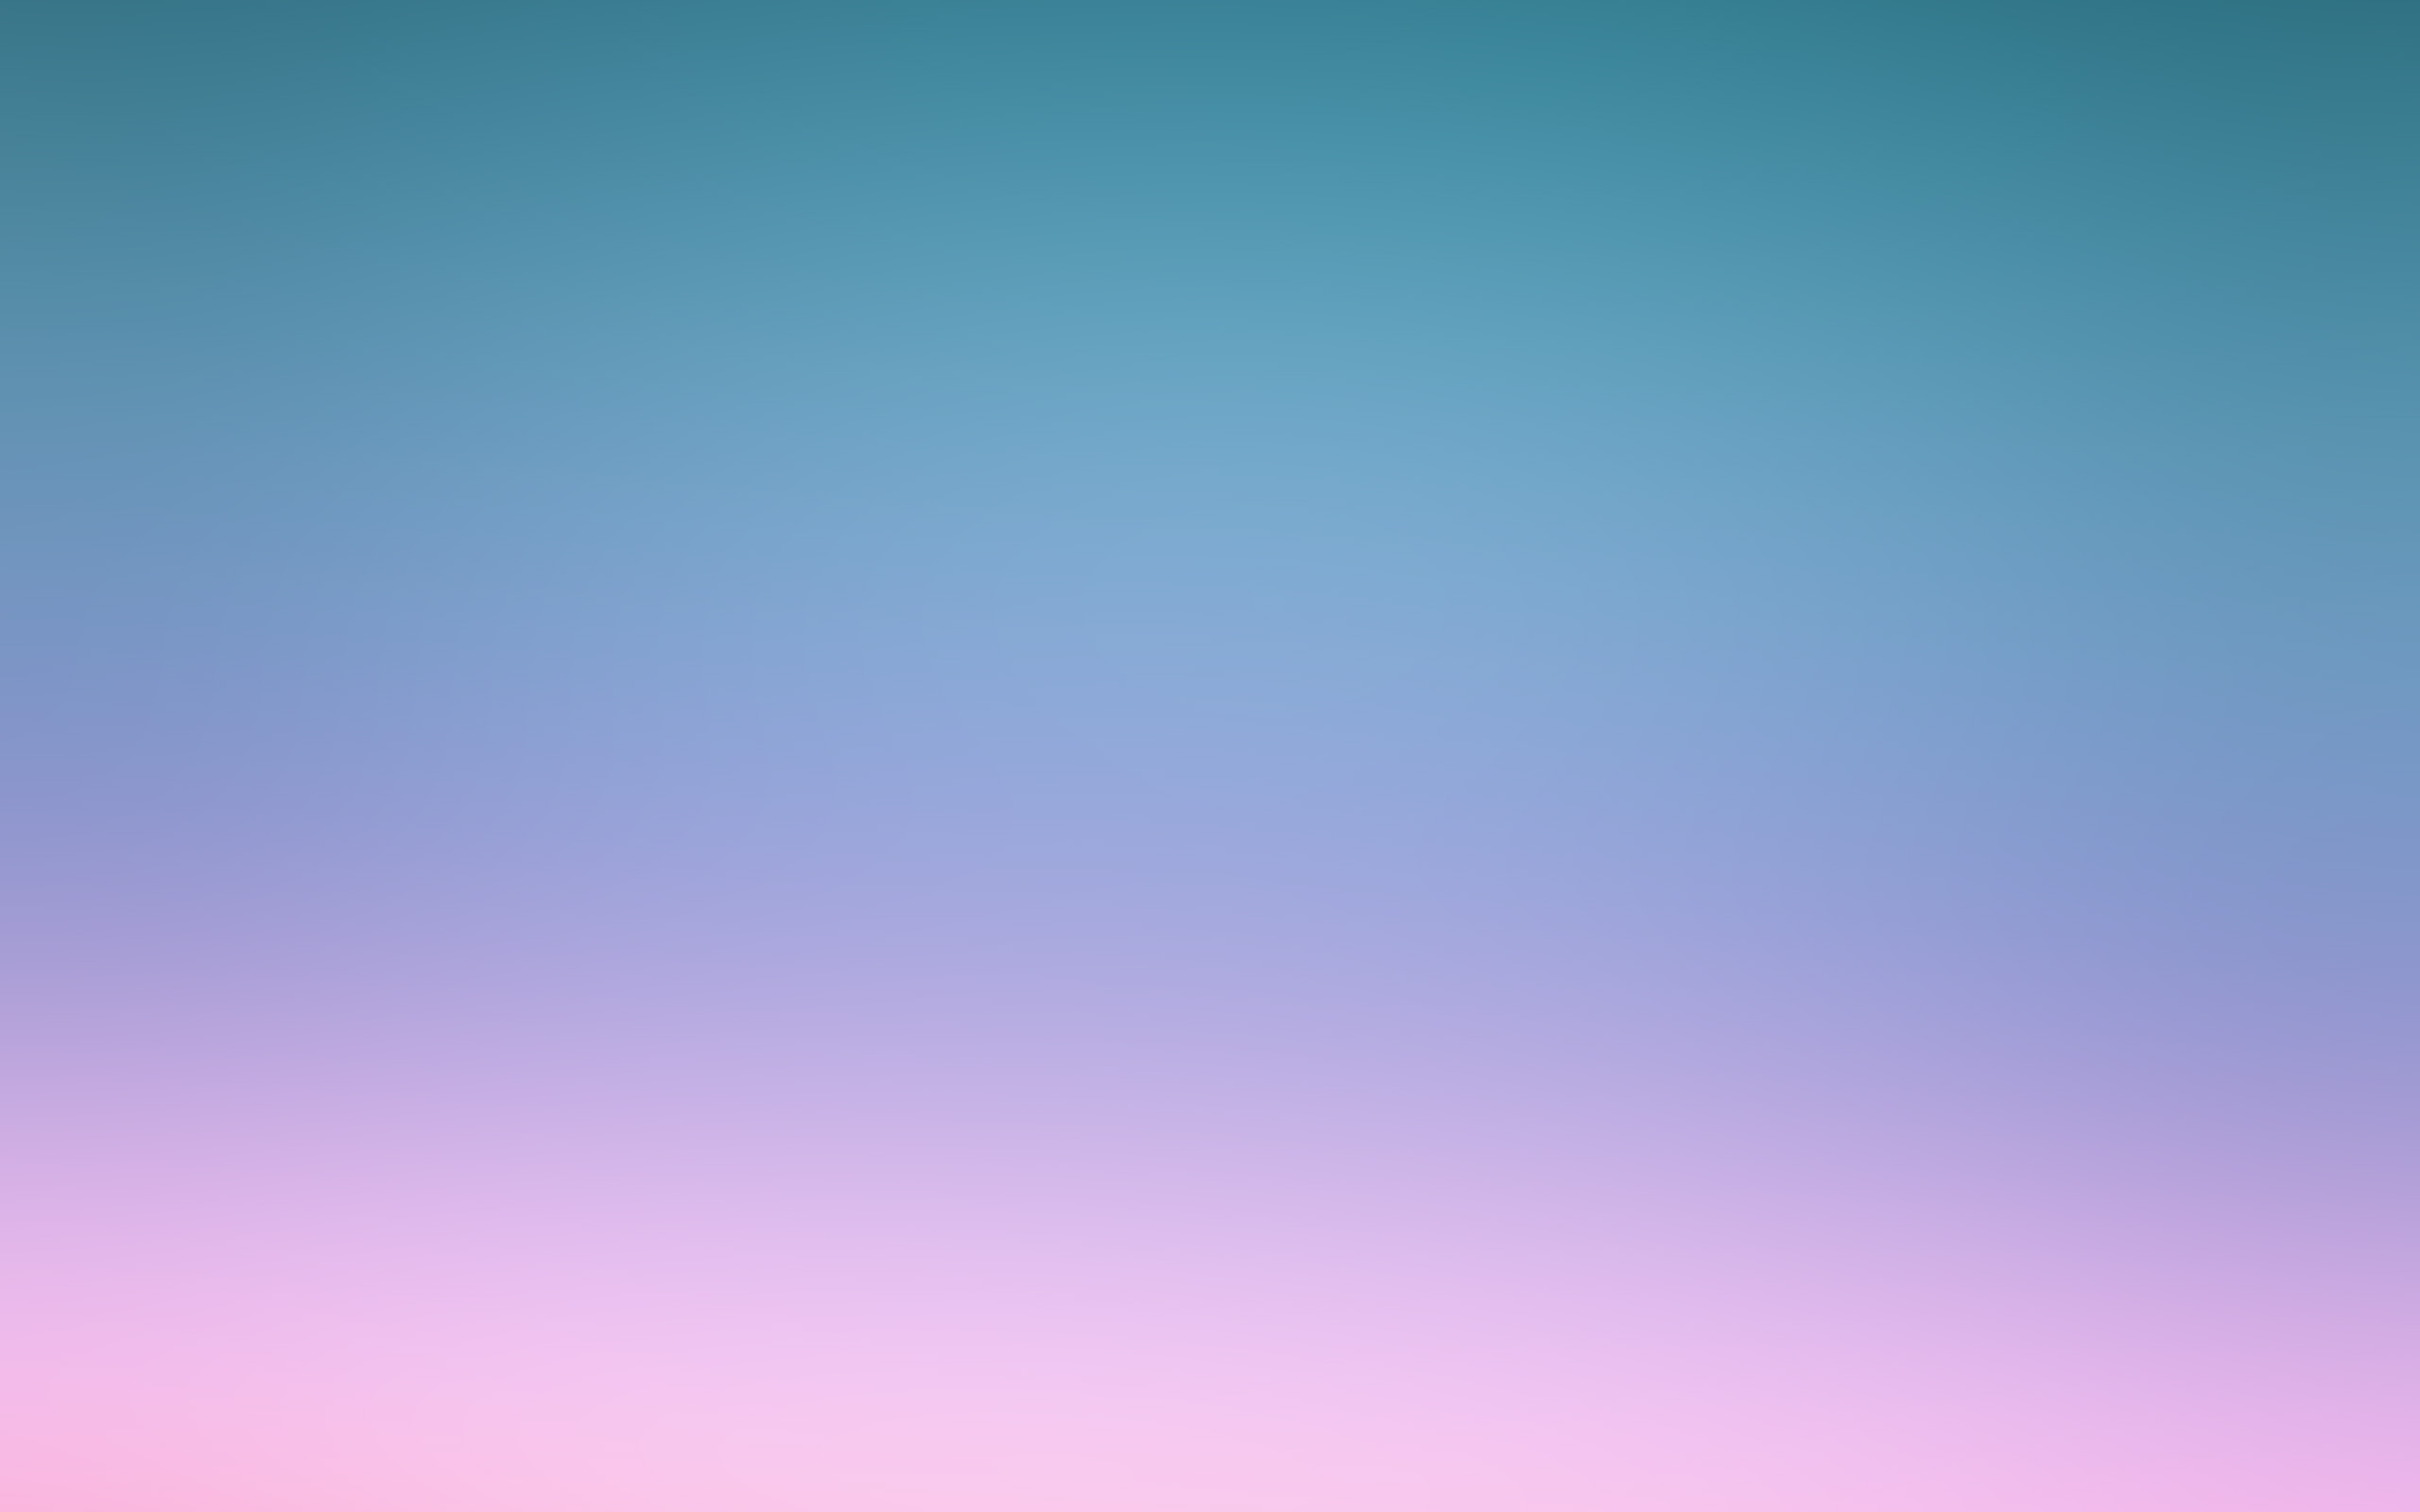 Sl34 Pink Blue Soft Pastel Blur Gradation Wallpaper